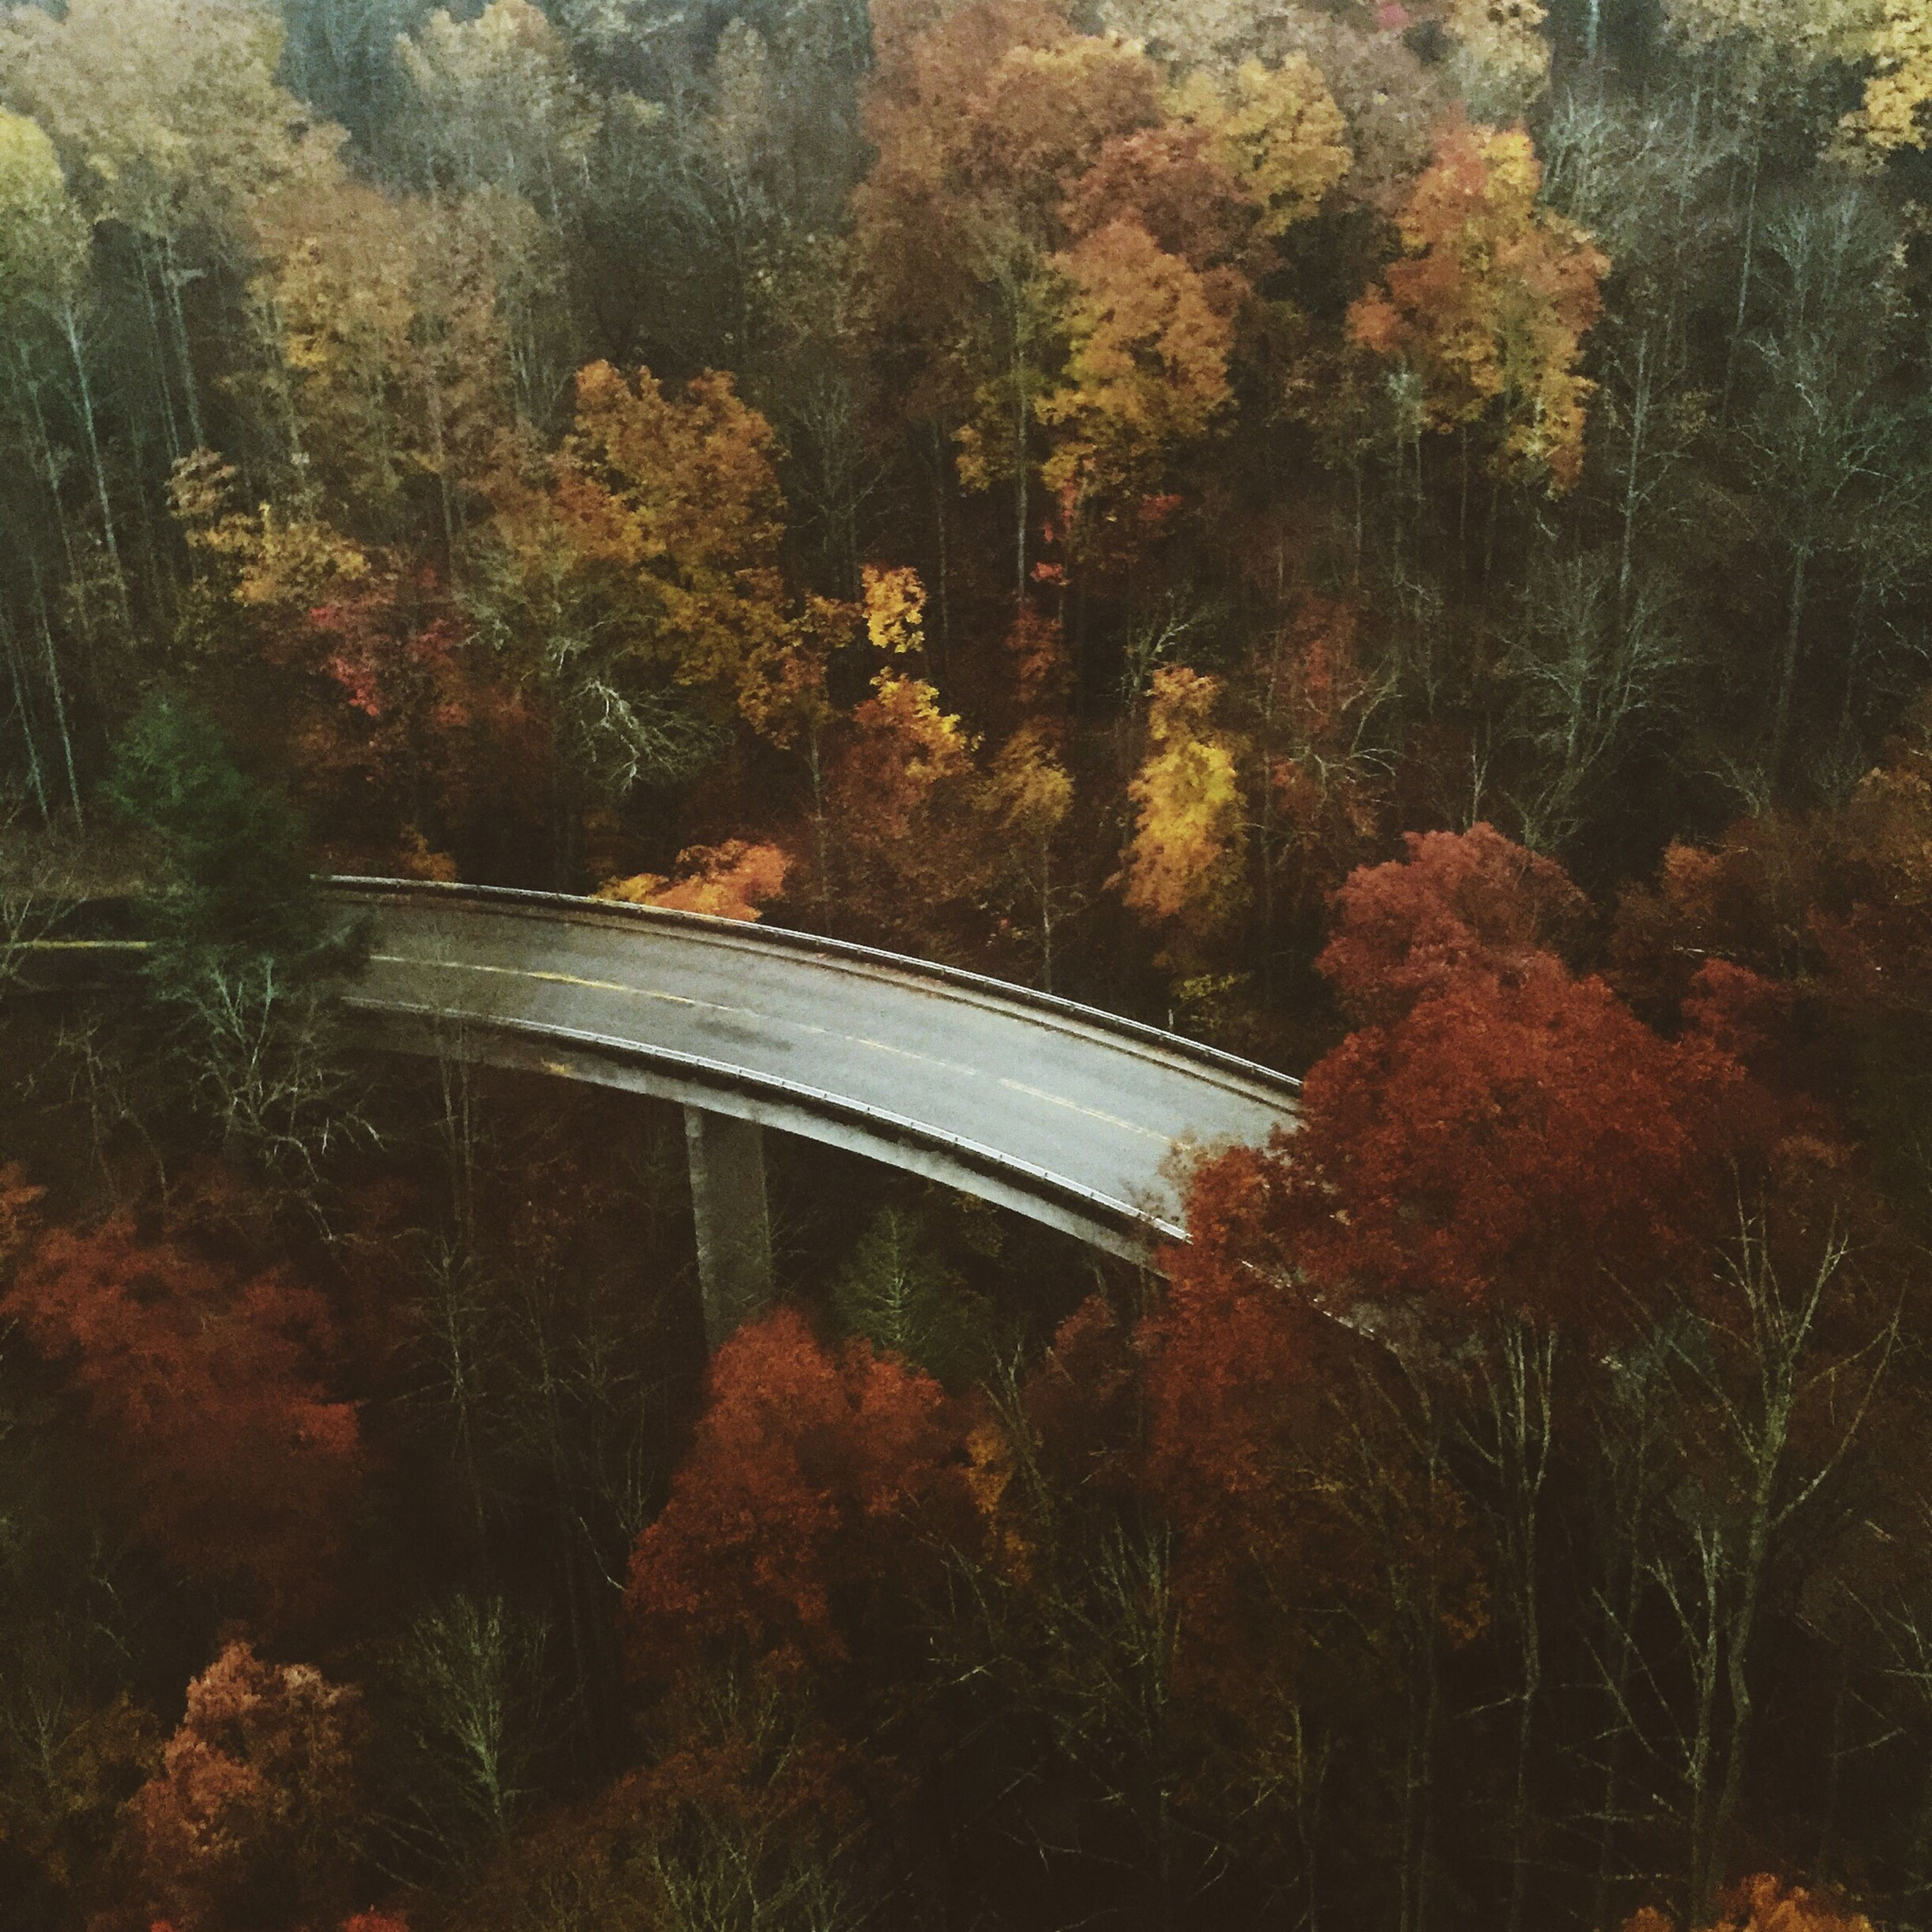 tree, transportation, forest, growth, nature, autumn, tranquility, bridge - man made structure, reflection, water, connection, high angle view, beauty in nature, outdoors, branch, no people, day, tranquil scene, river, plant